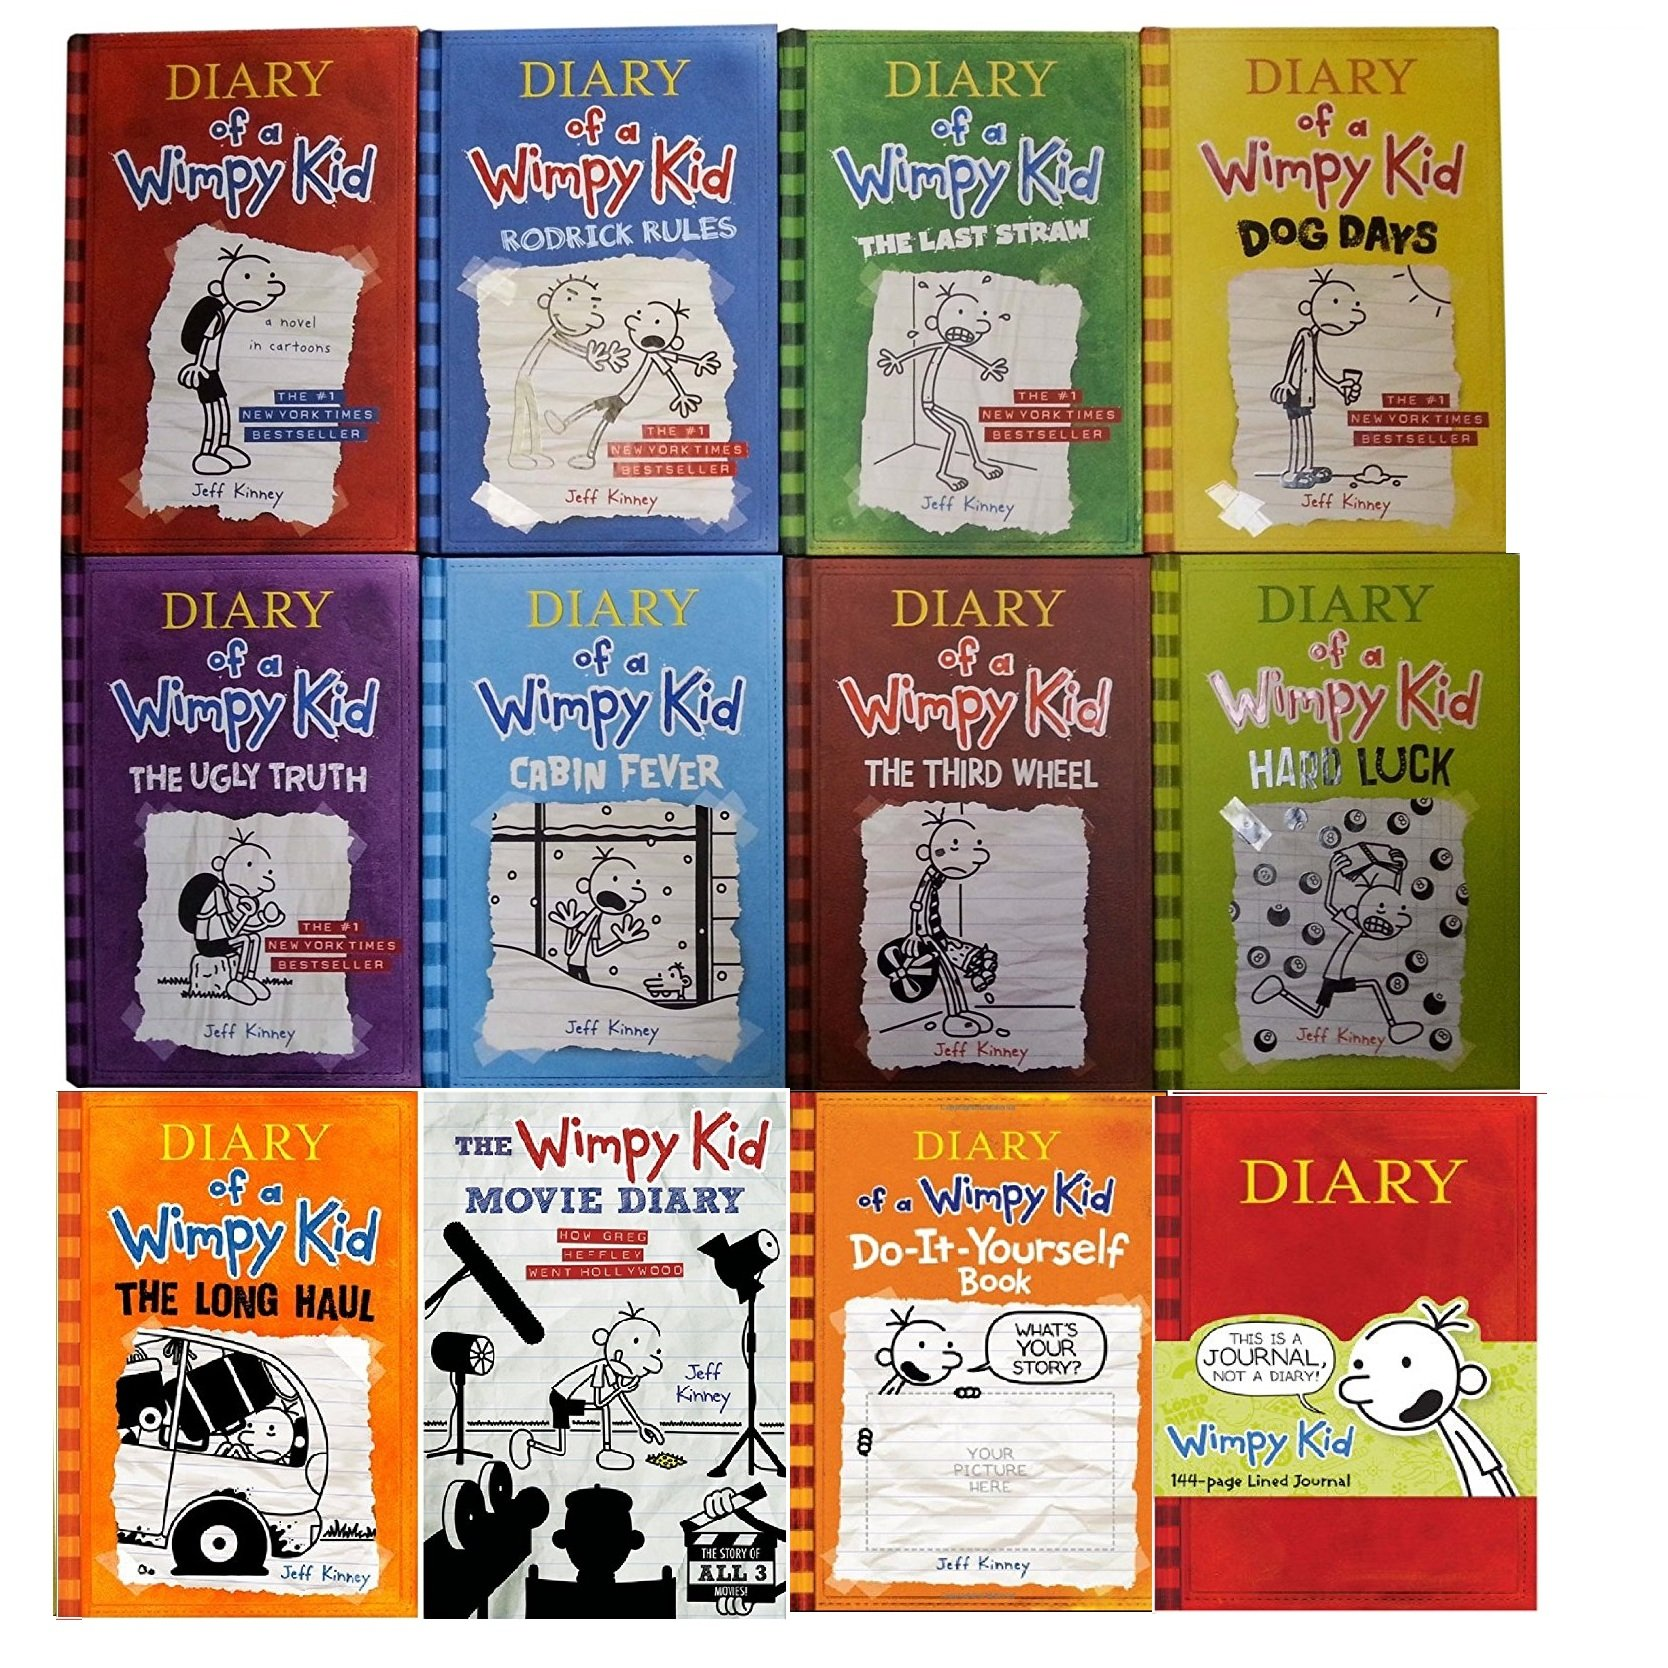 Diary of wimpy kid 12 book complete set books 1 9 movie diary diary of wimpy kid 12 book complete set books 1 9 movie diary diy journal amazon books solutioingenieria Image collections